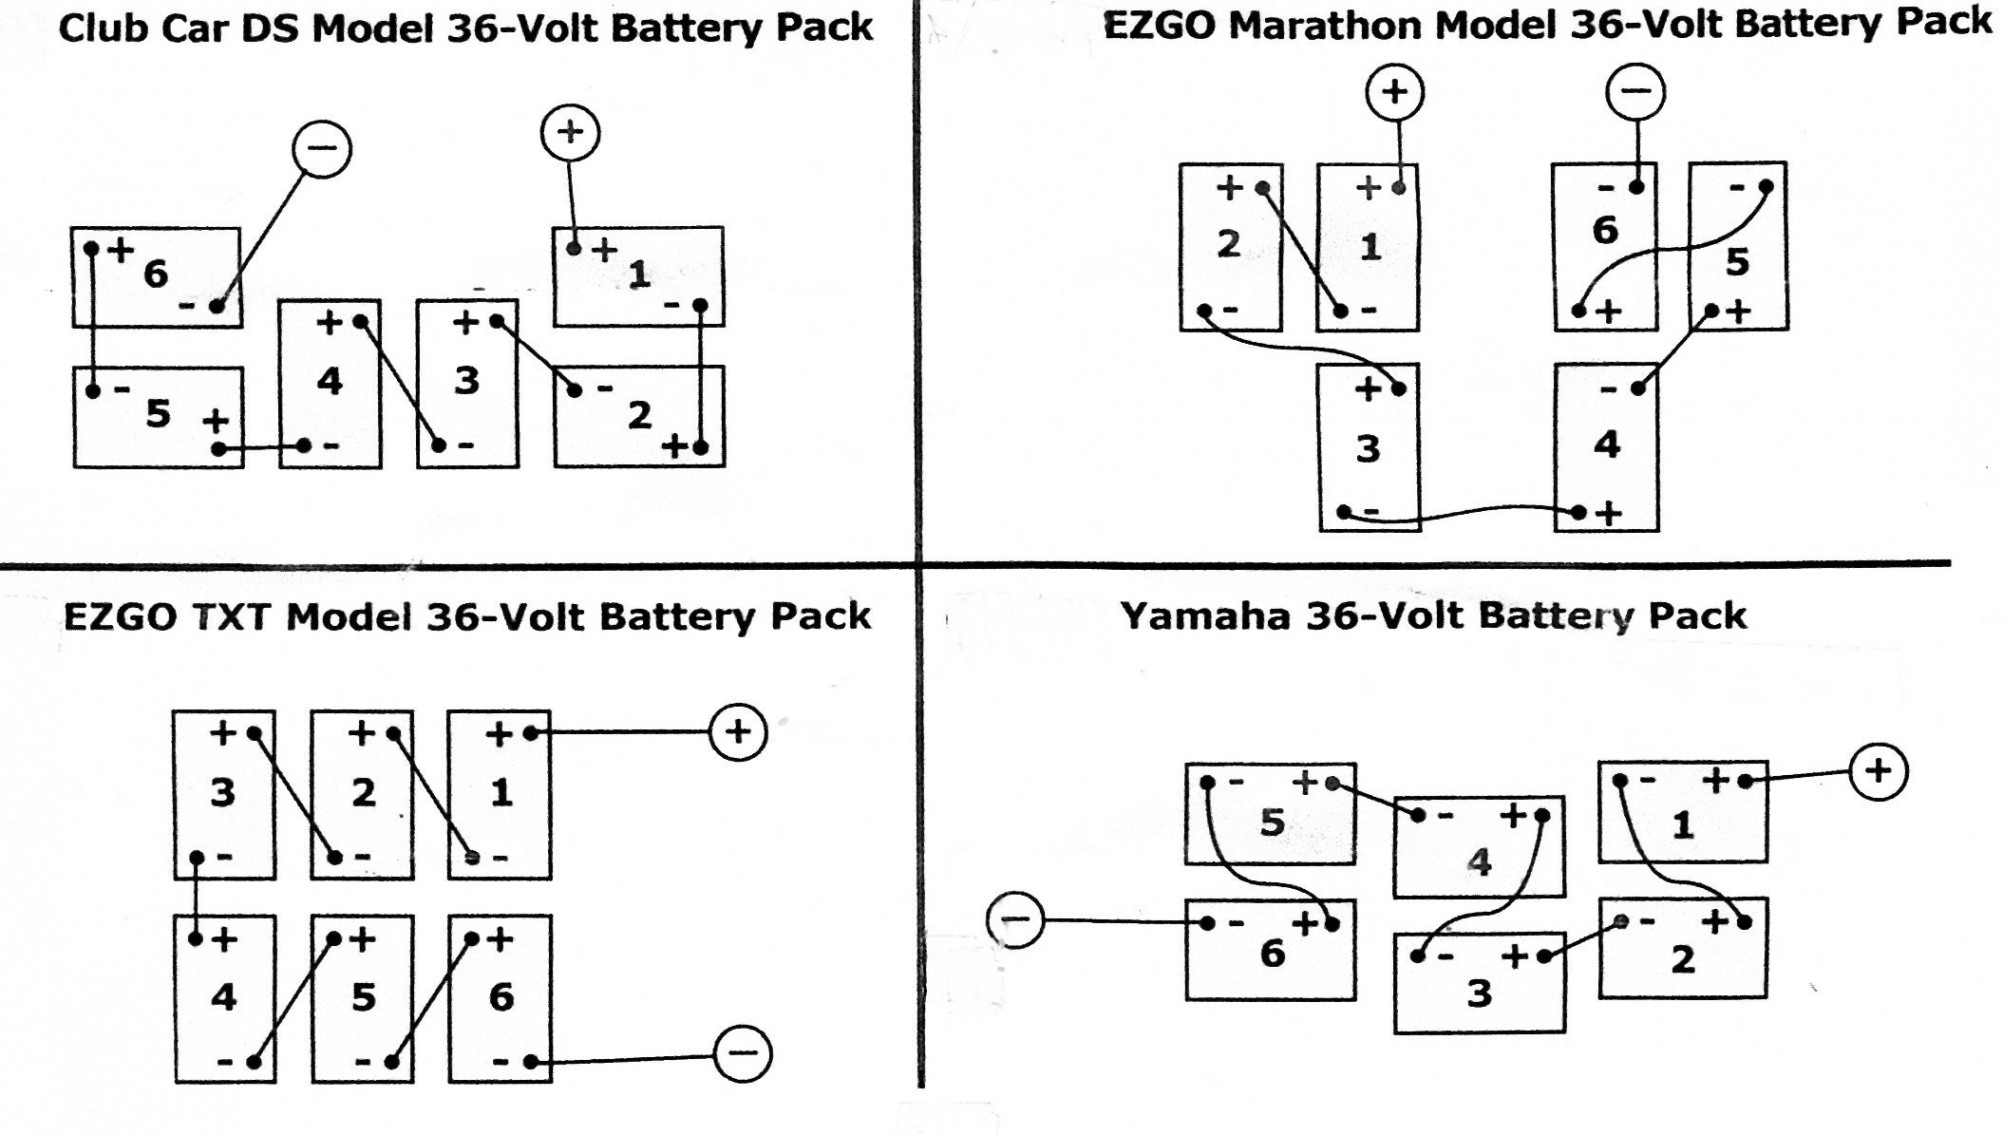 Yamaha Golf Cart Battery Wiring Diagram - Club Car Wiring Diagram 36 Volt – Wiring Diagrams for Yamaha Golf Carts Refrence Ez Golf 20m